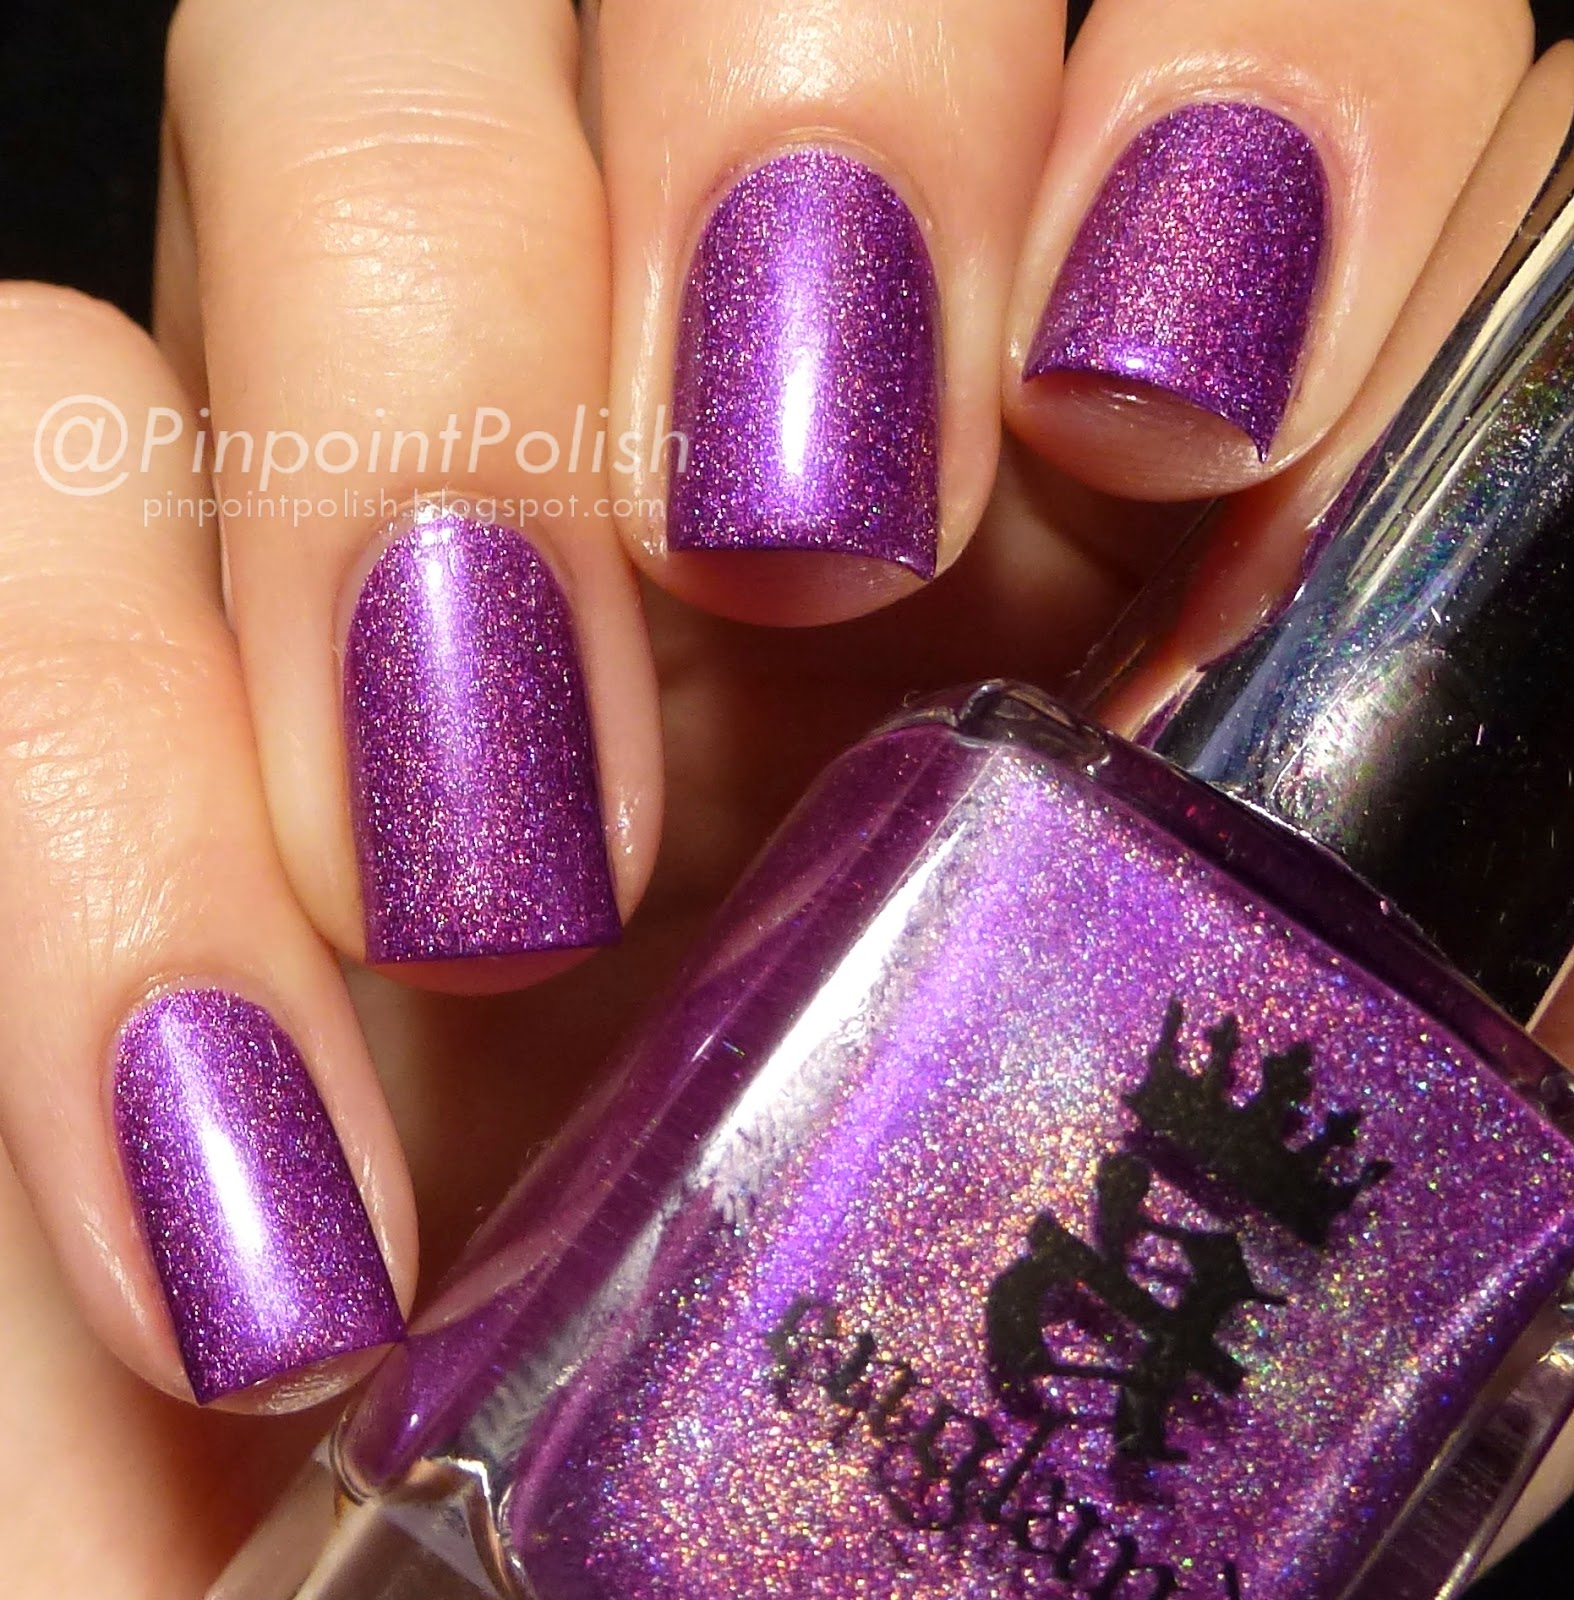 a england, Crown of Thistles, swatch